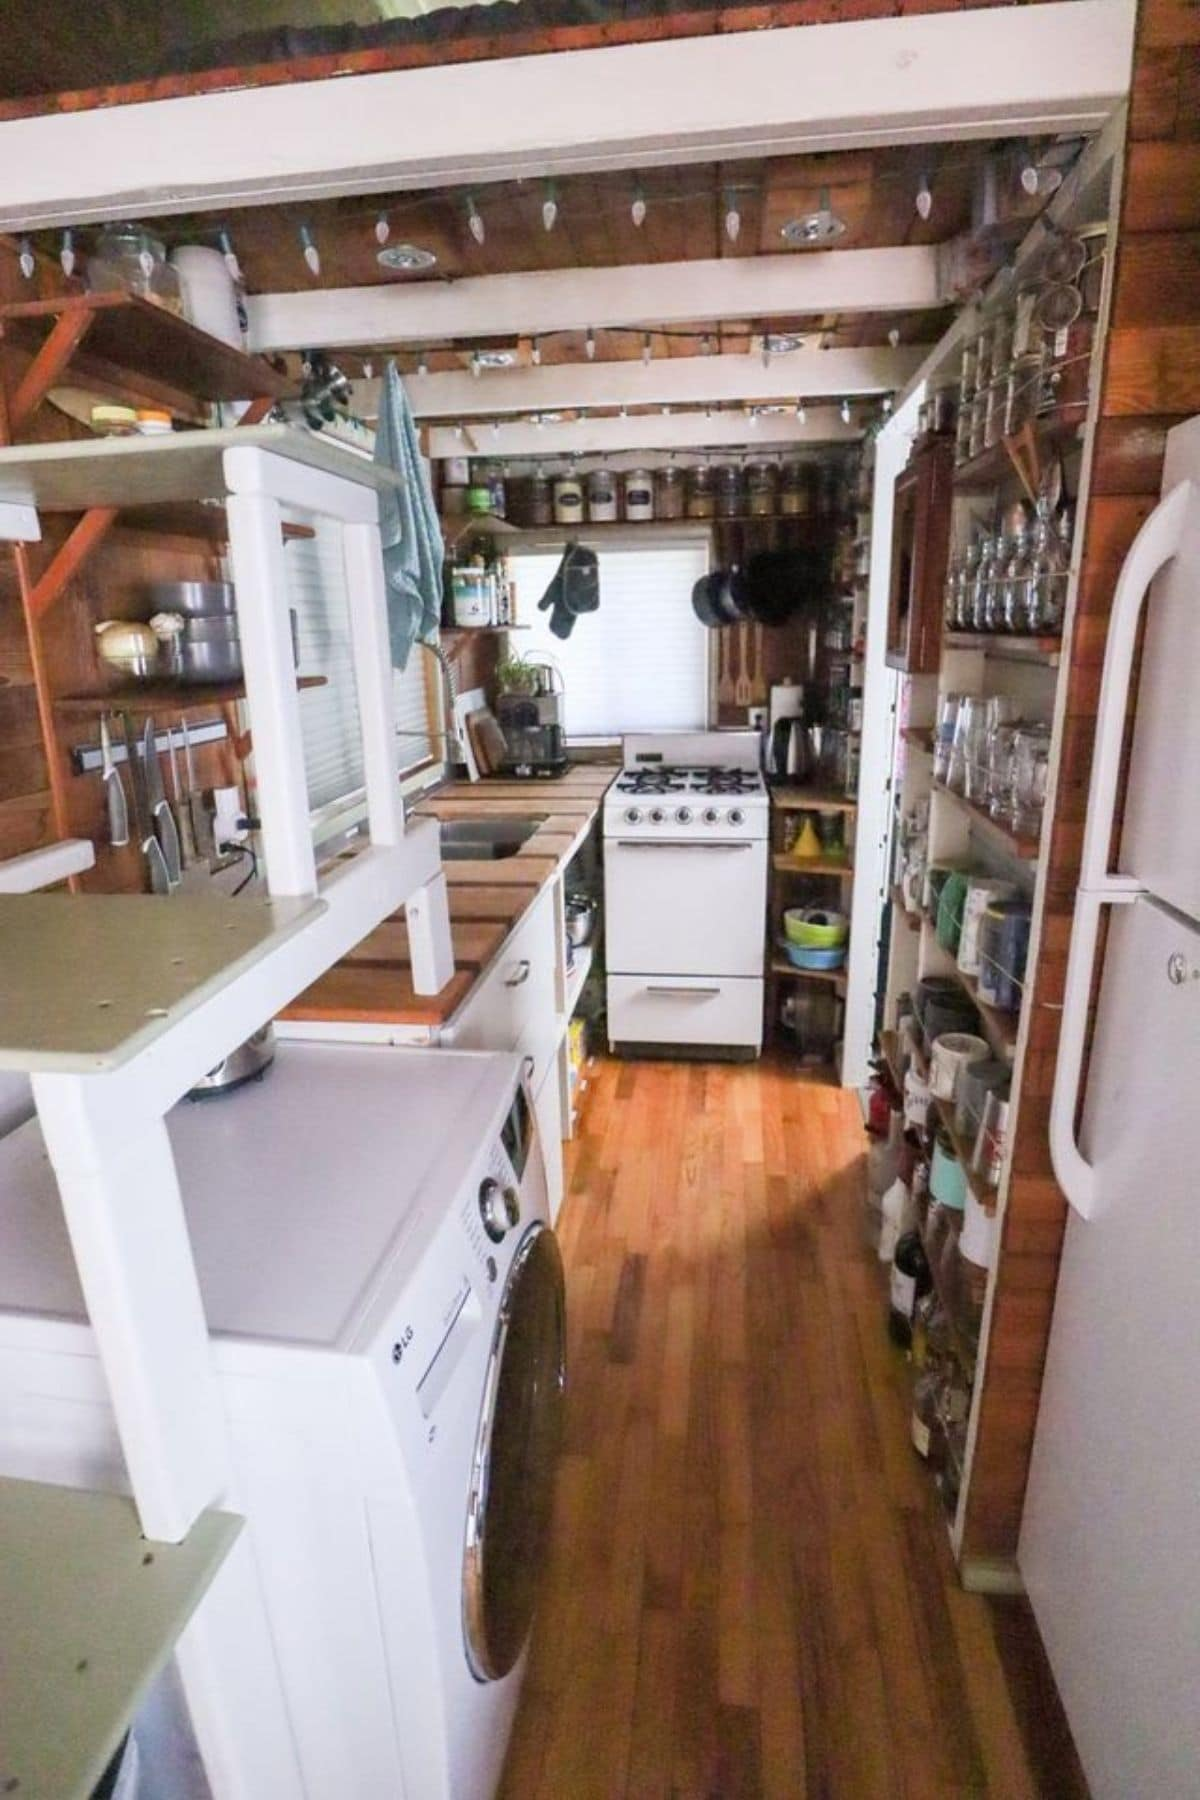 View into kitchen with storage shelves beside white refrigerator